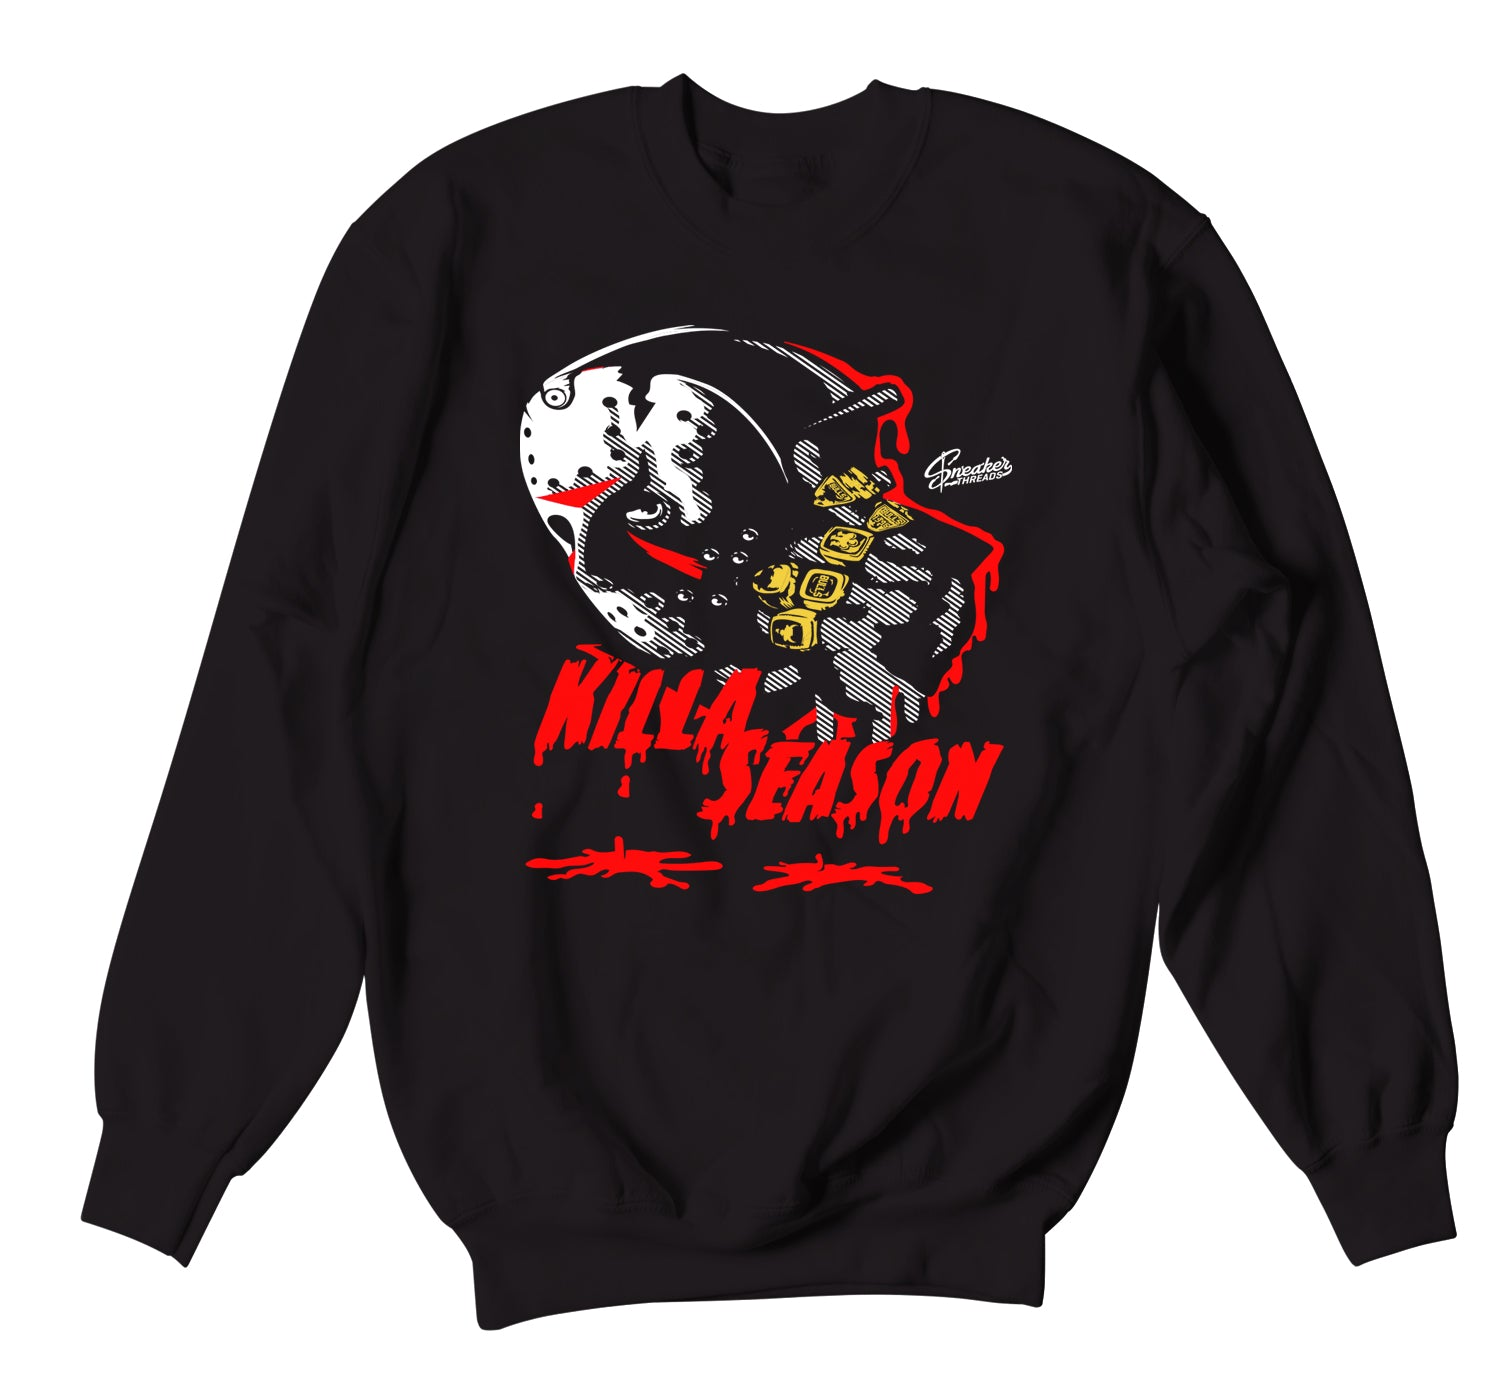 Jordan 12 Super Bowl Sweater - Killa Season - Black